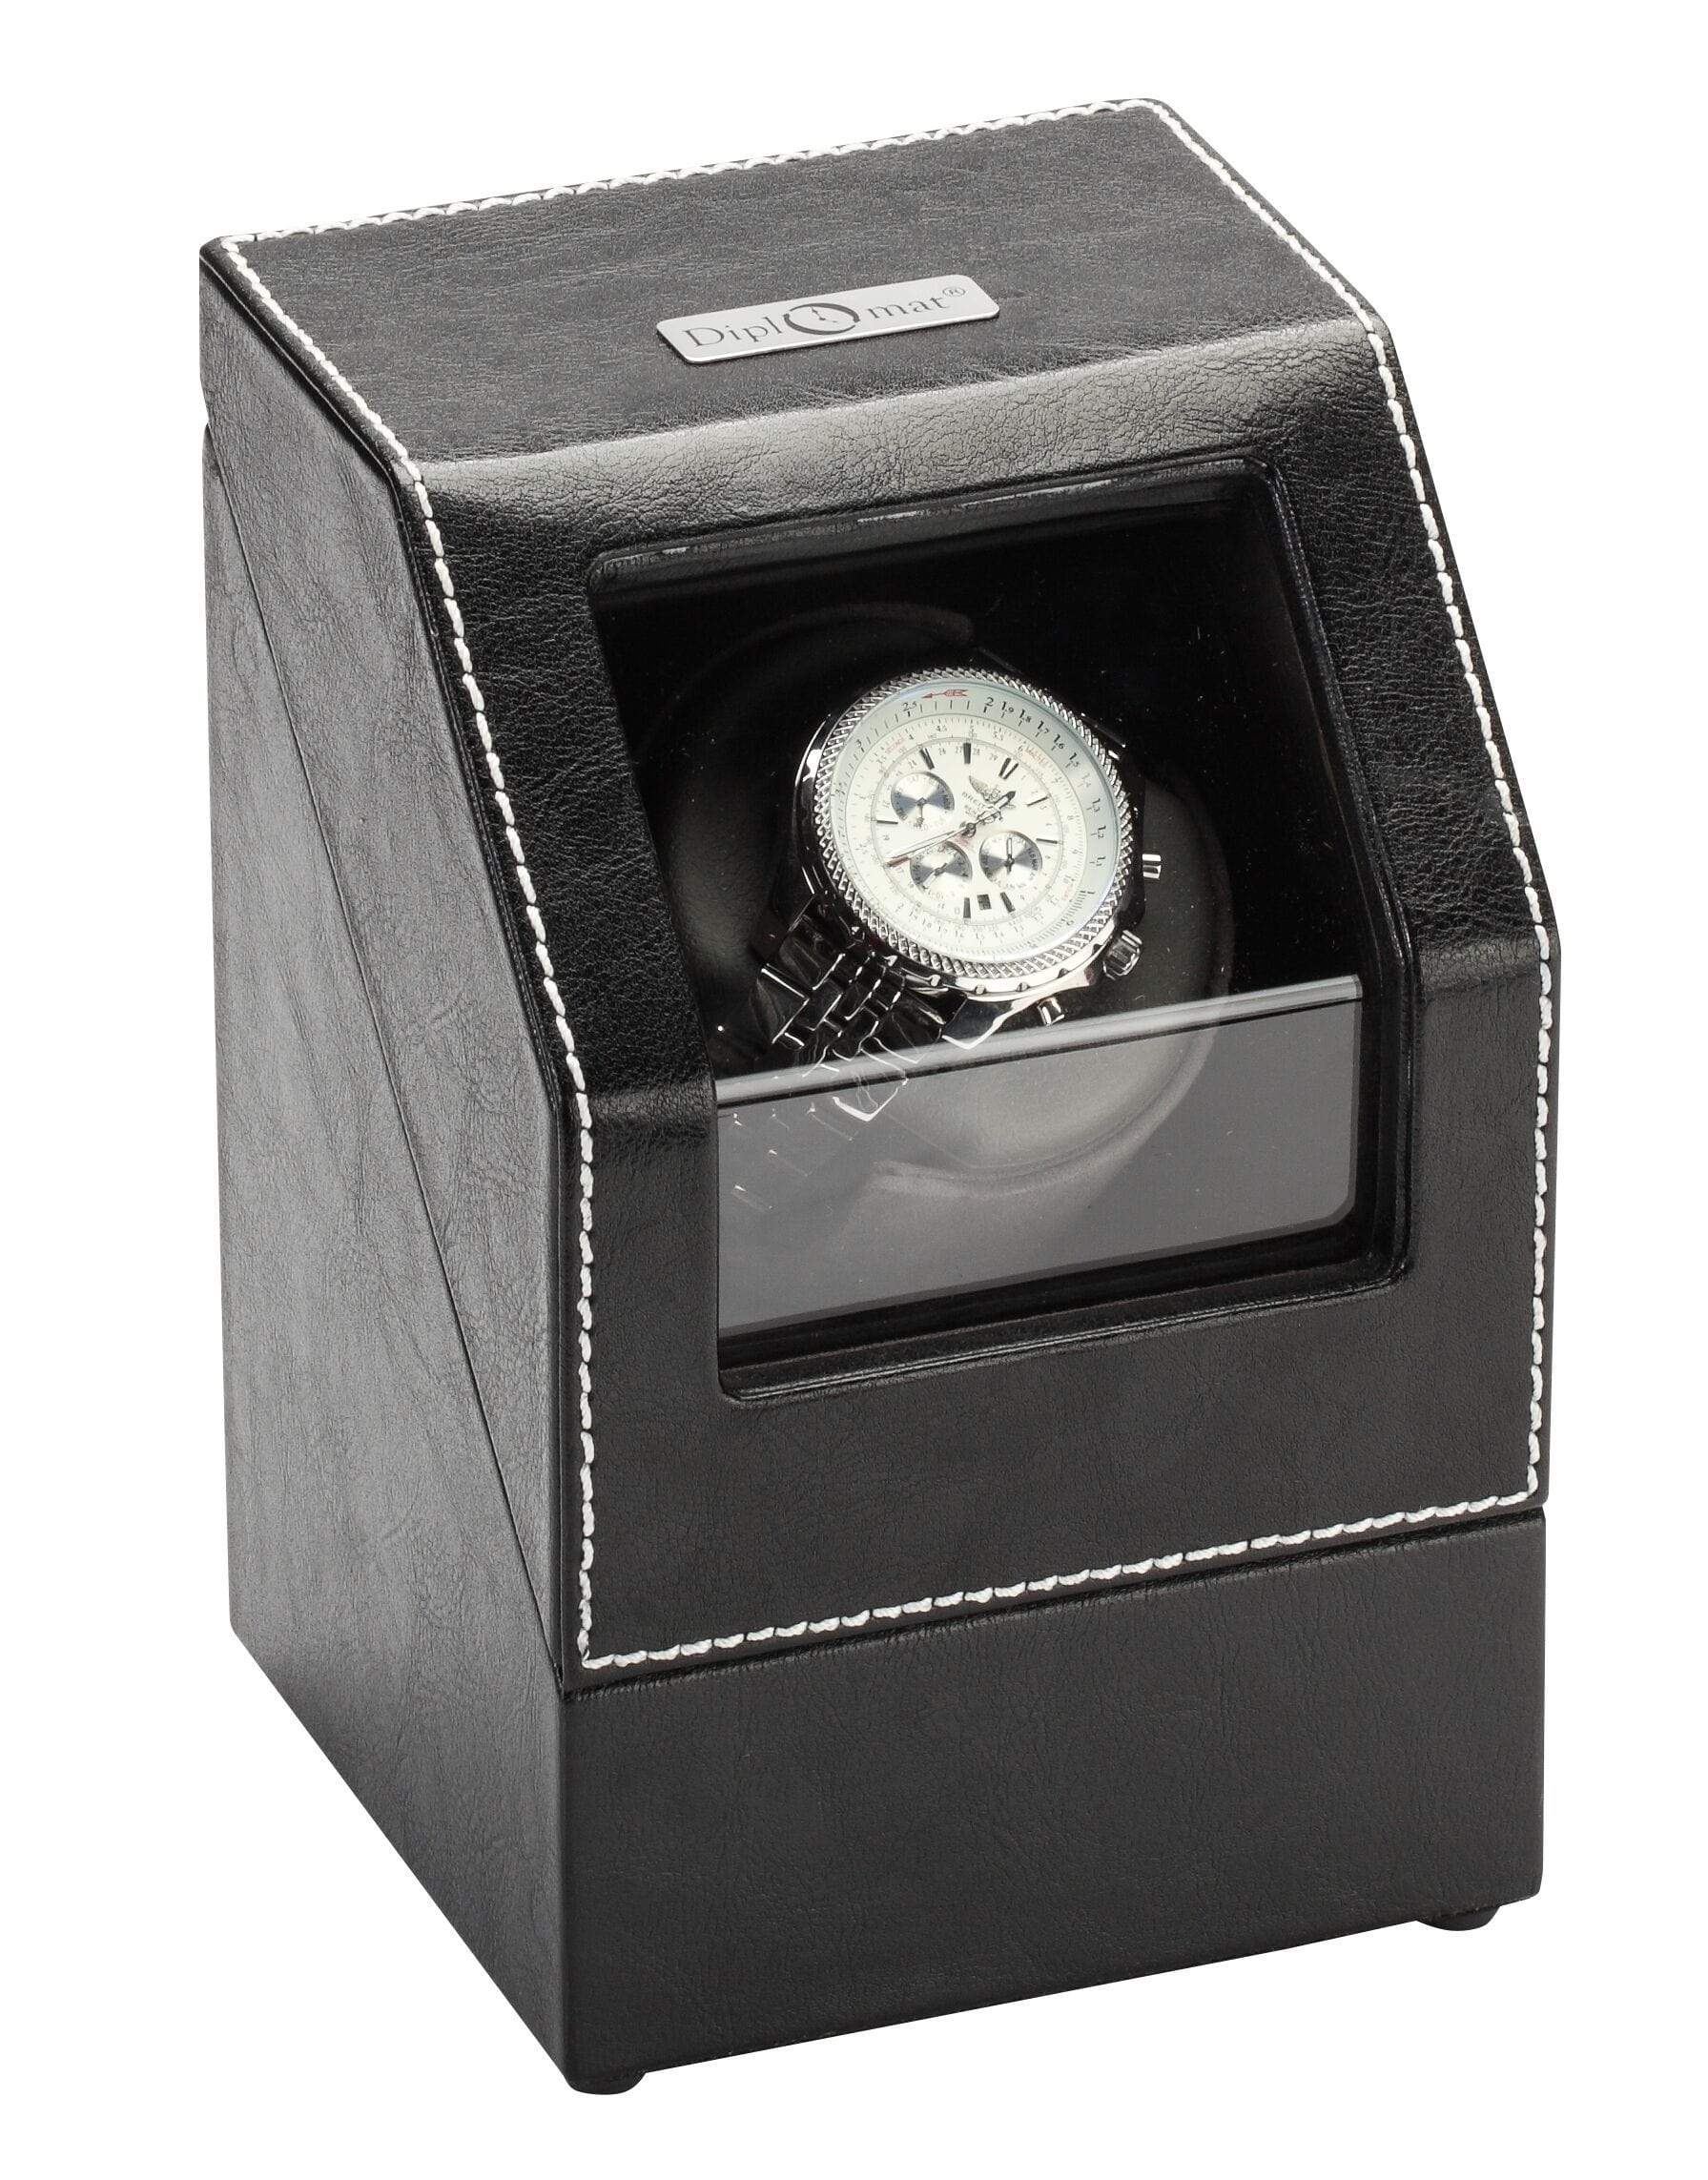 Diplomat Black Leather Single Watch Winder with Gray Microfiber Suede Interior and Smart Internal Bi-Directional Timer Control, Battery/AC Powered Armadillo Safe and Vault